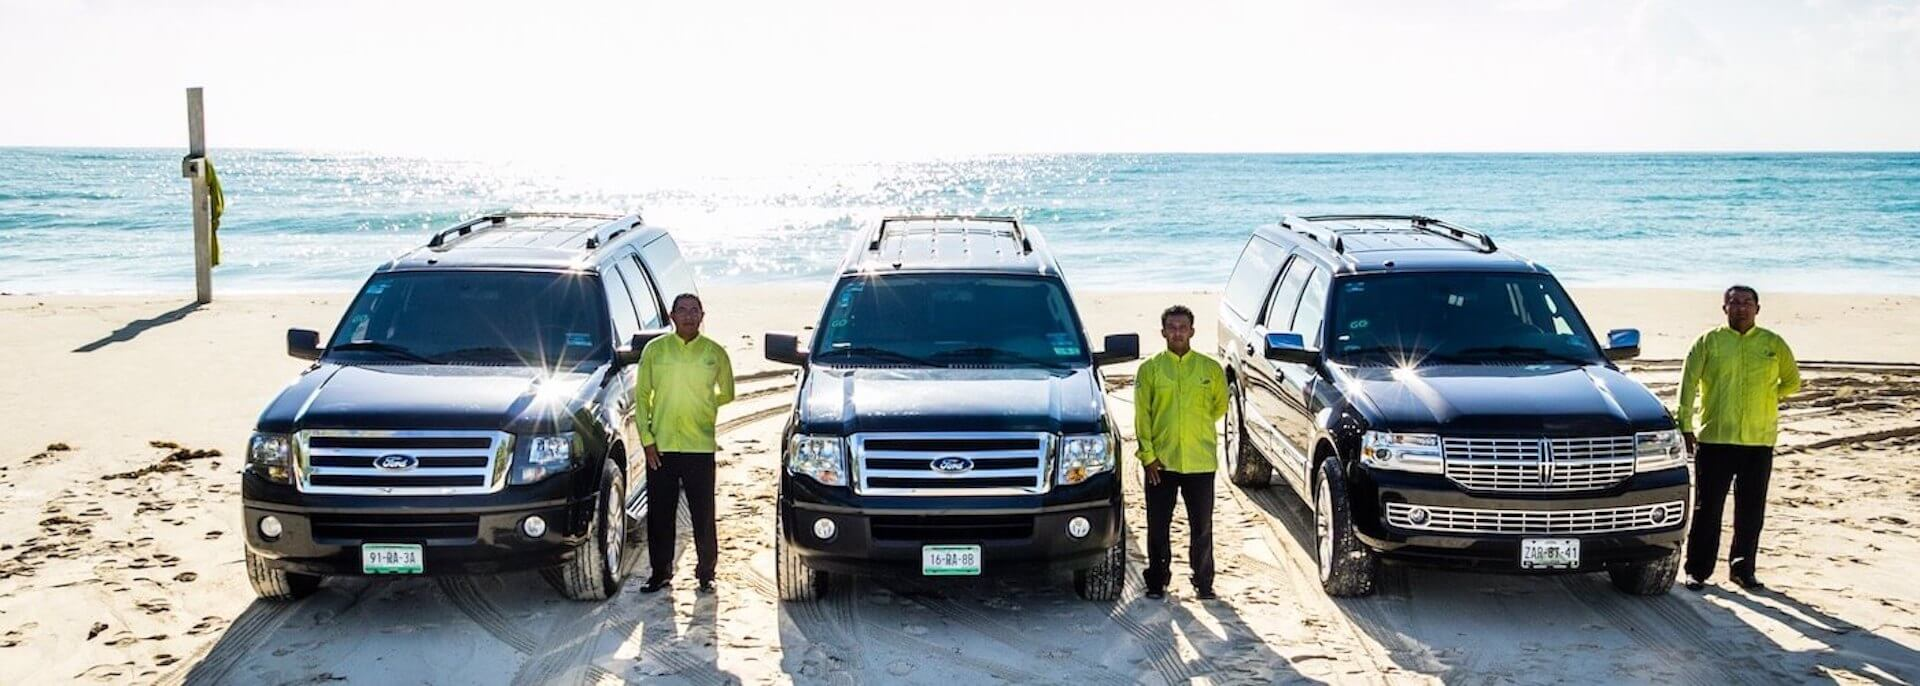 "<h2 style=""color: #fff""><strong>Luxury Riviera Maya Transportation</strong></h2>"